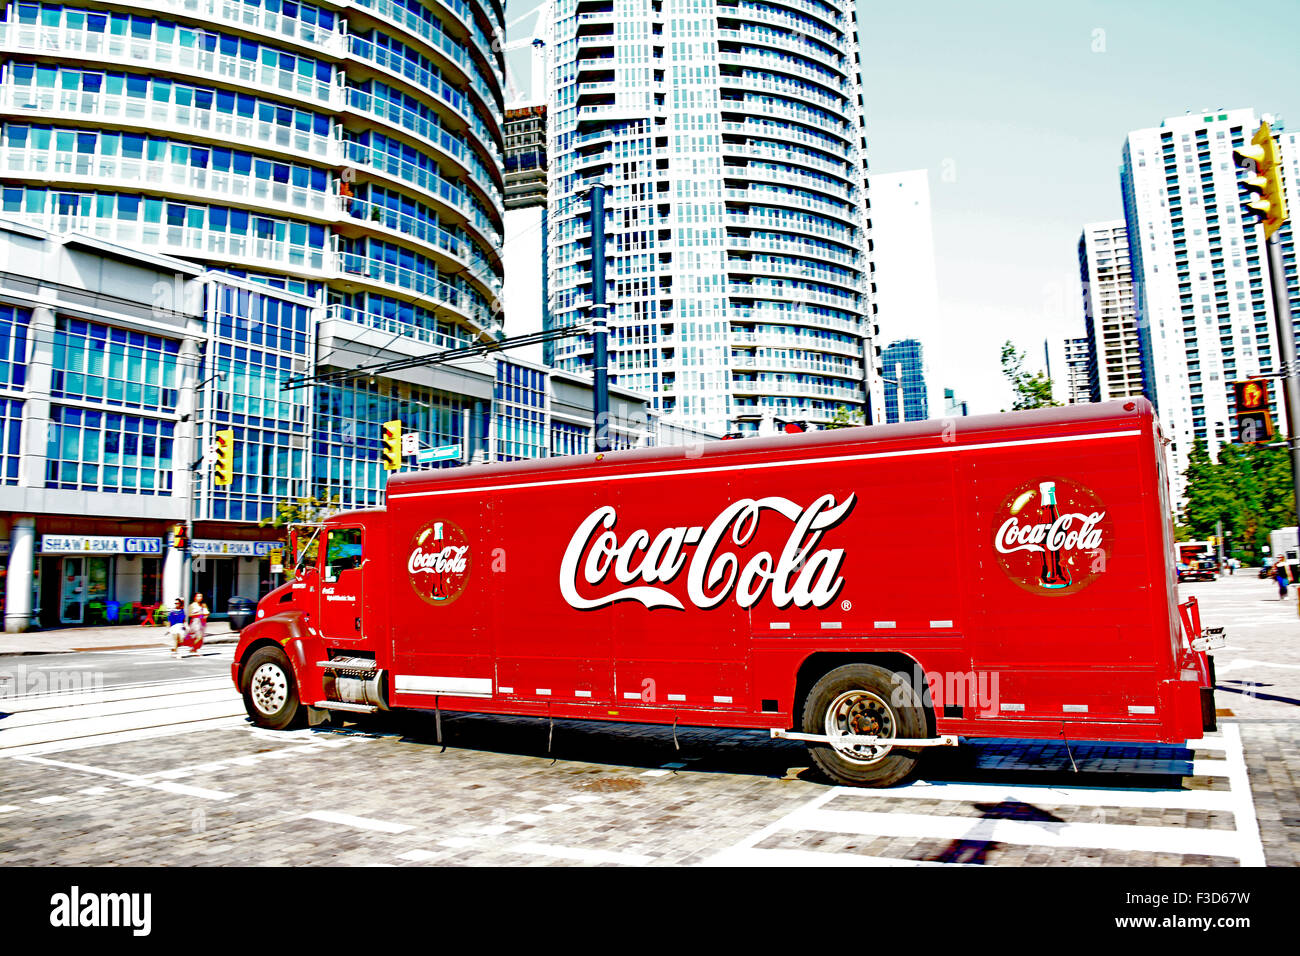 Coca cola truck in the city - Stock Image